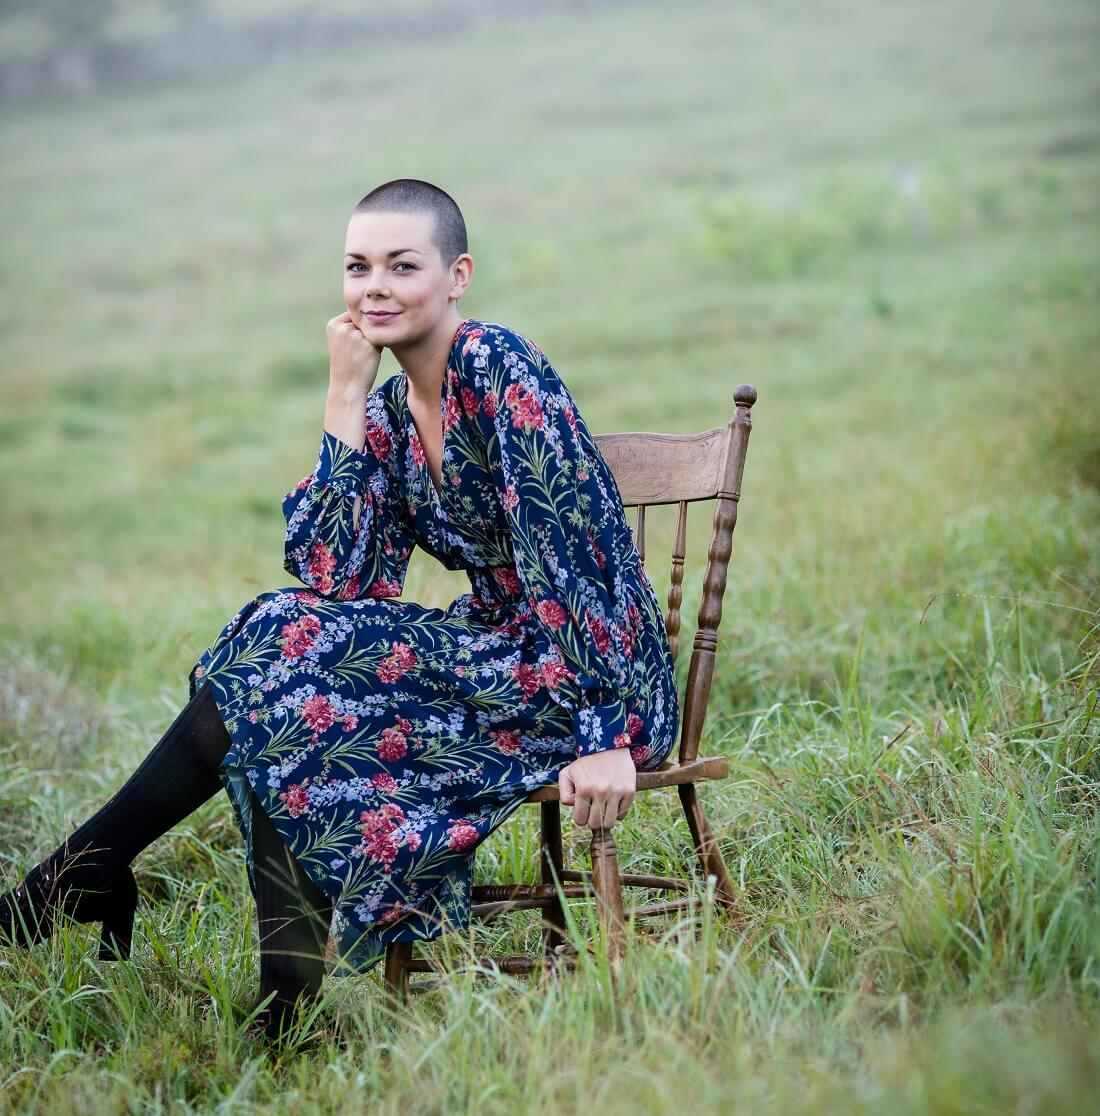 Woman who has had Micropigmentation done sits in a chair in the grass